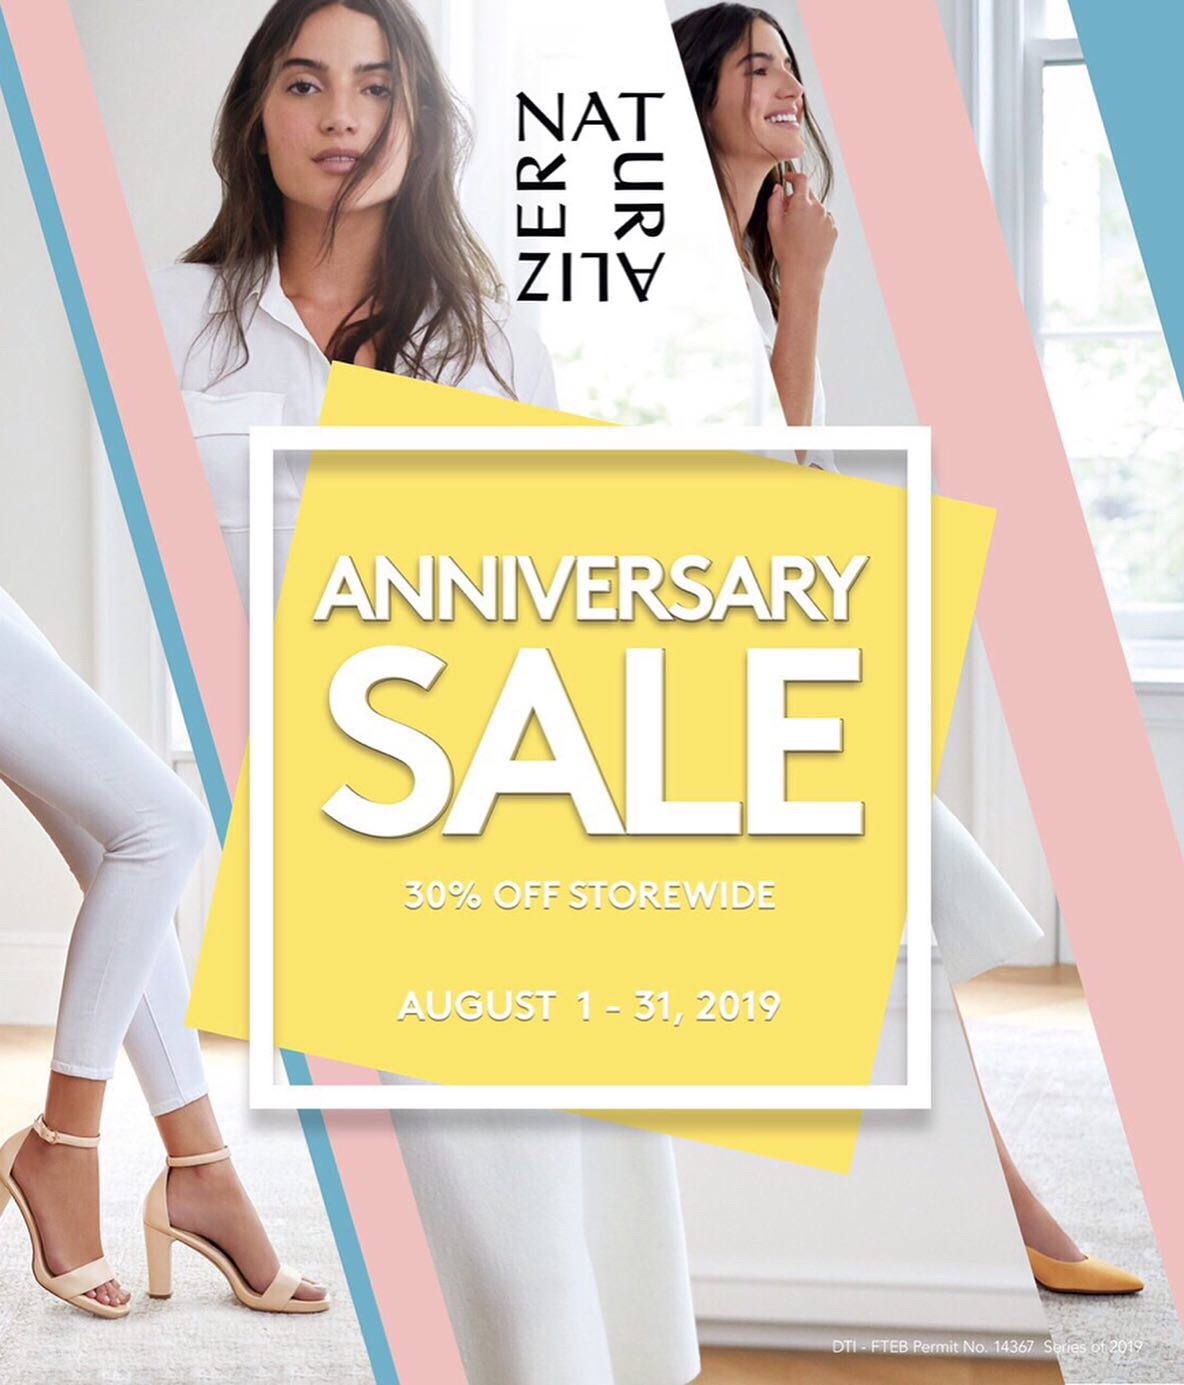 Shoes on Sale: Naturalizer Philippines' Anniversary Sale